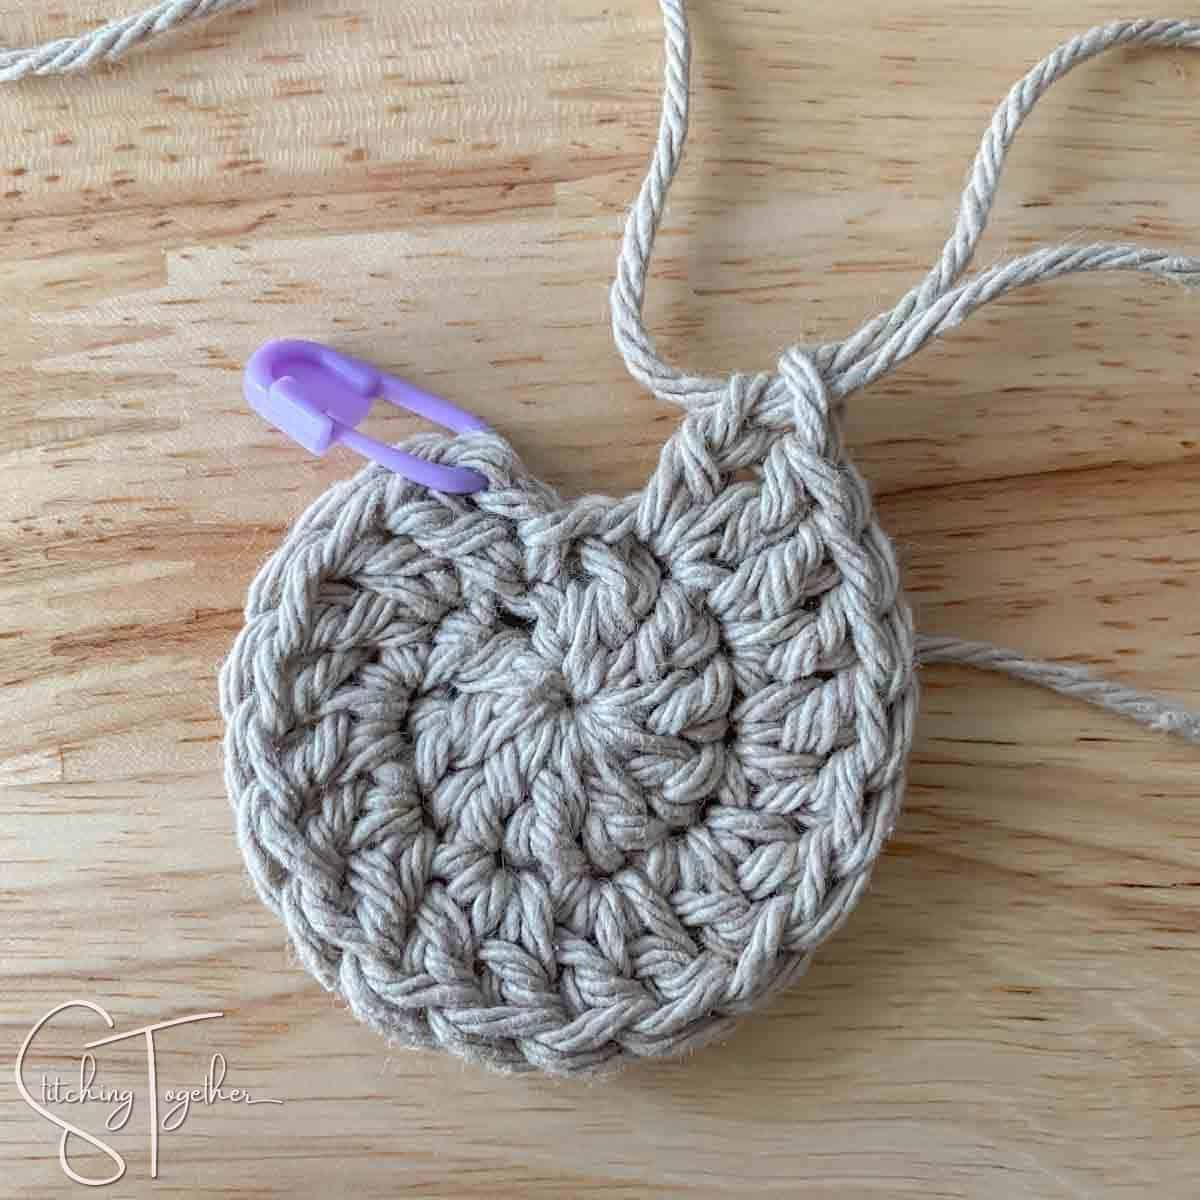 round 3 of crochet coaster not joined yet